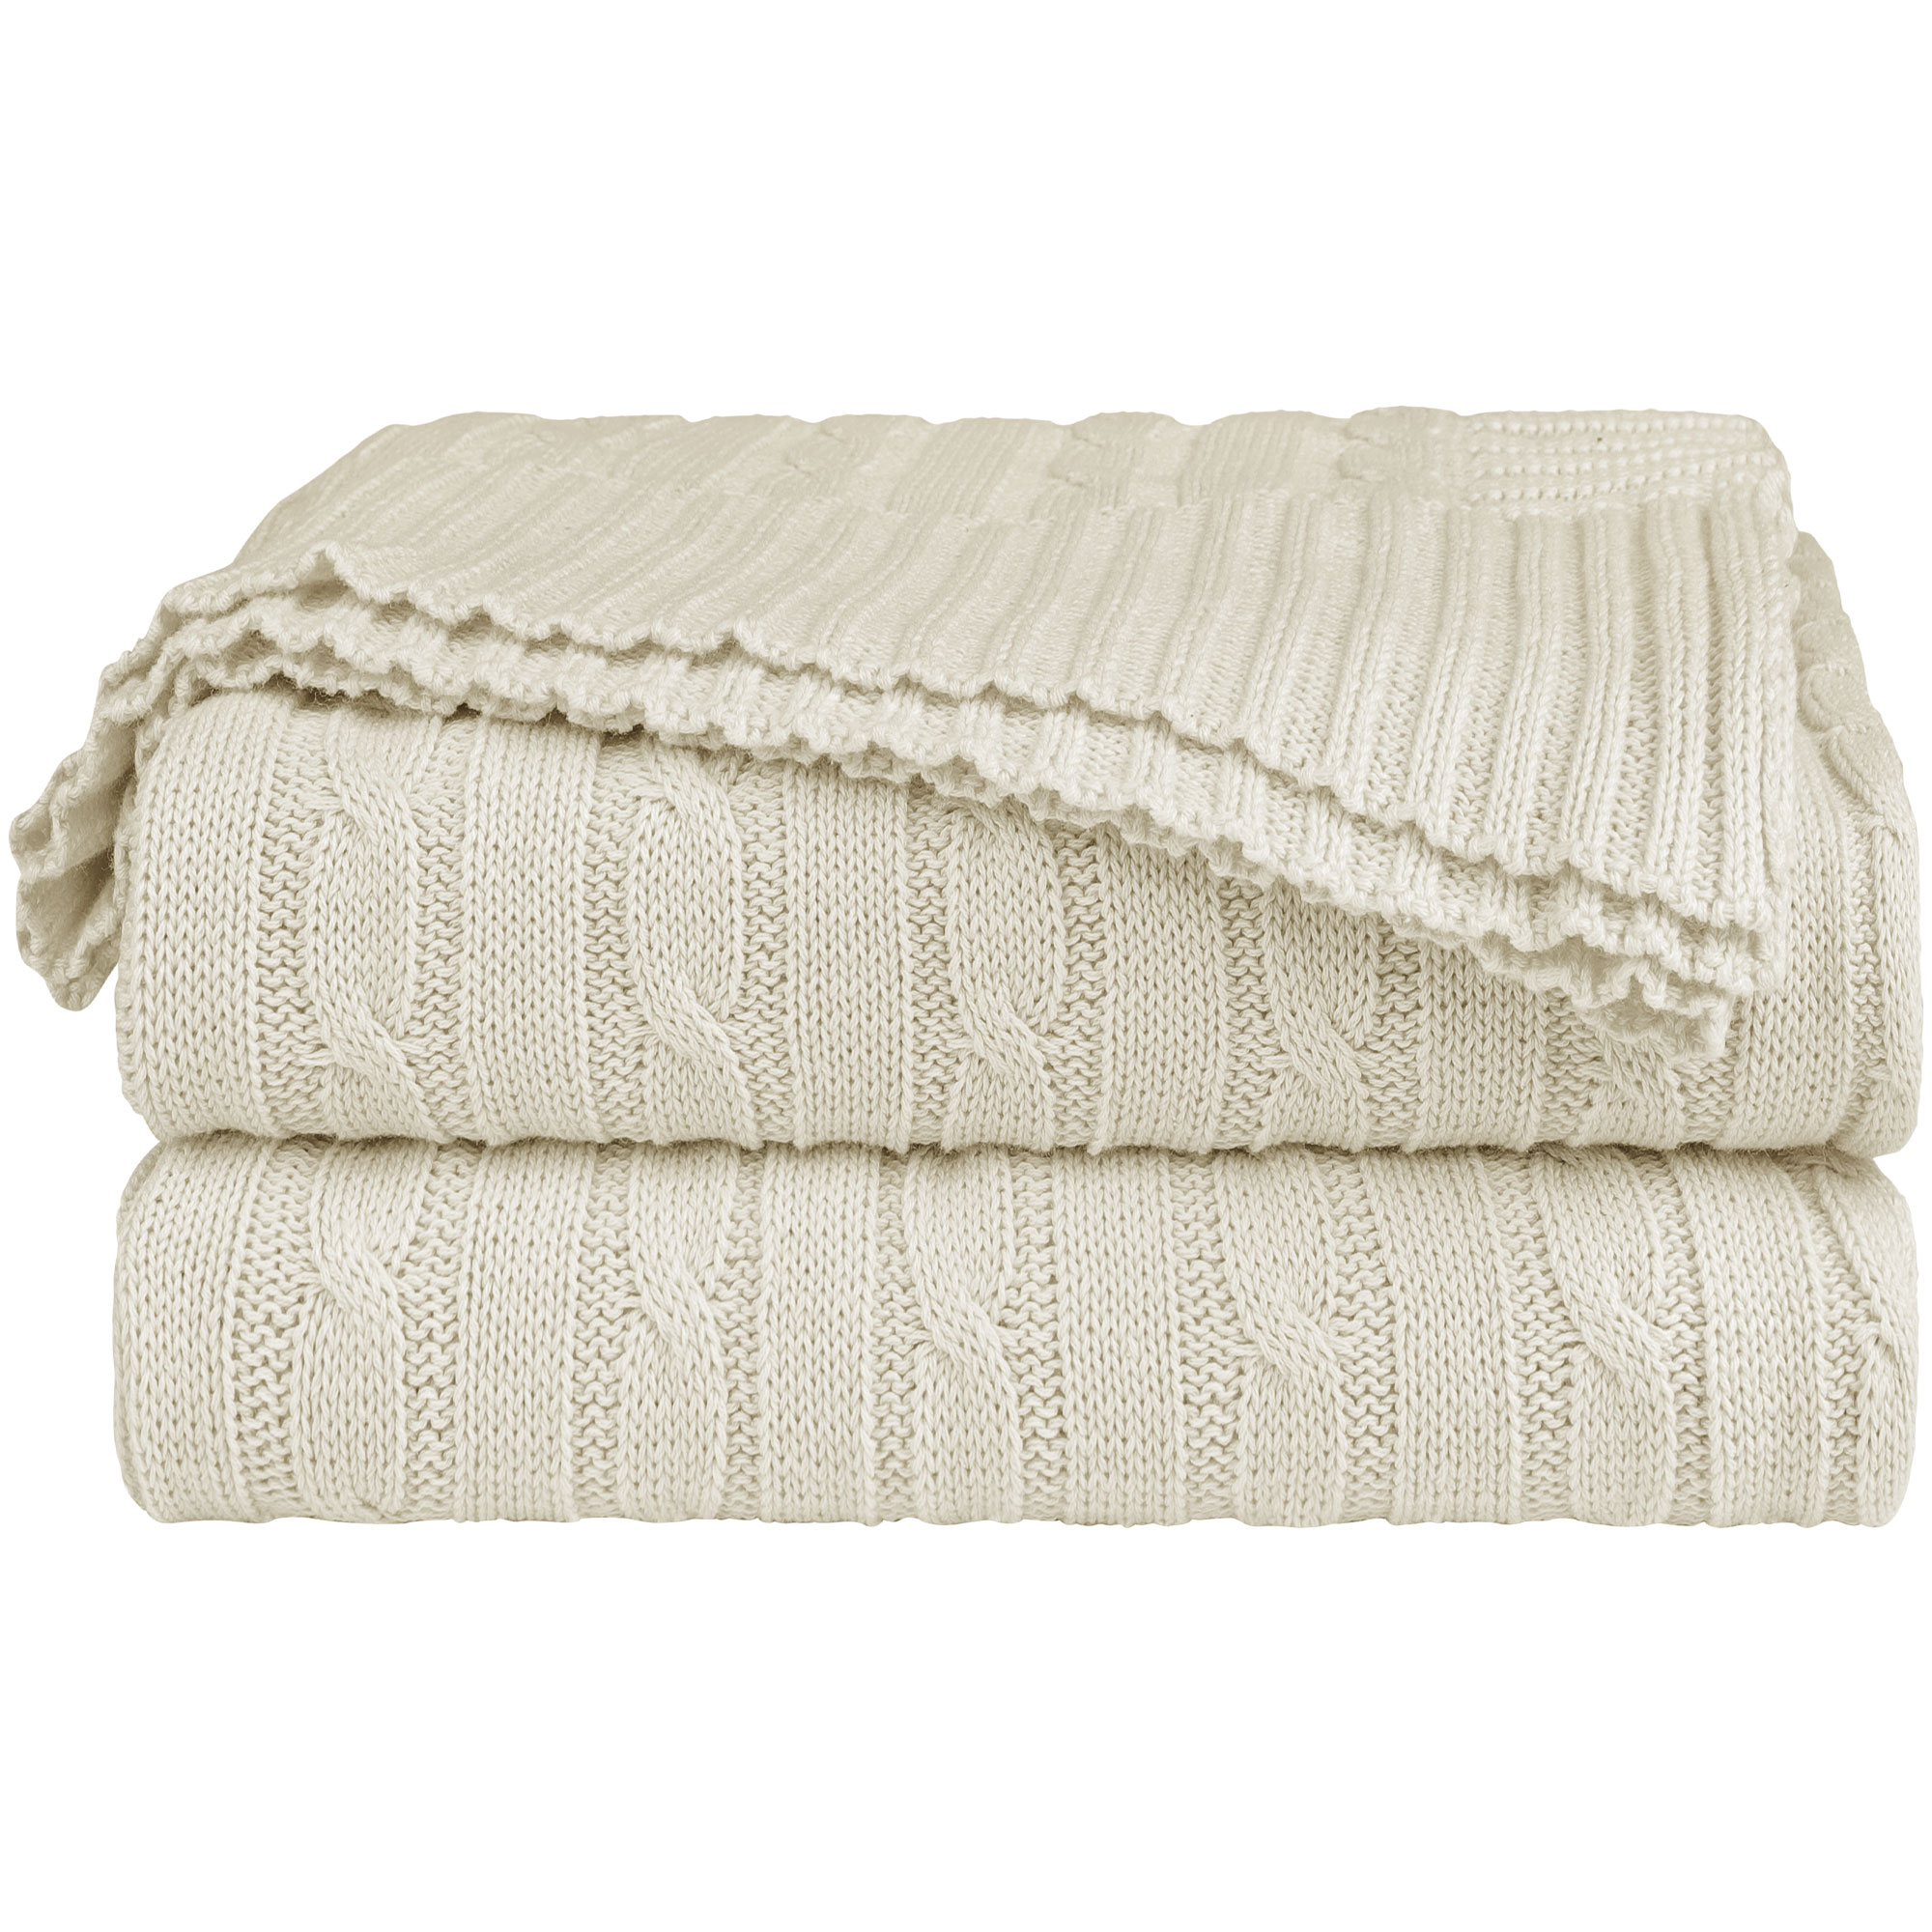 Home Decor 100% Cotton Soft Cable Knit Throw Blanket Beige